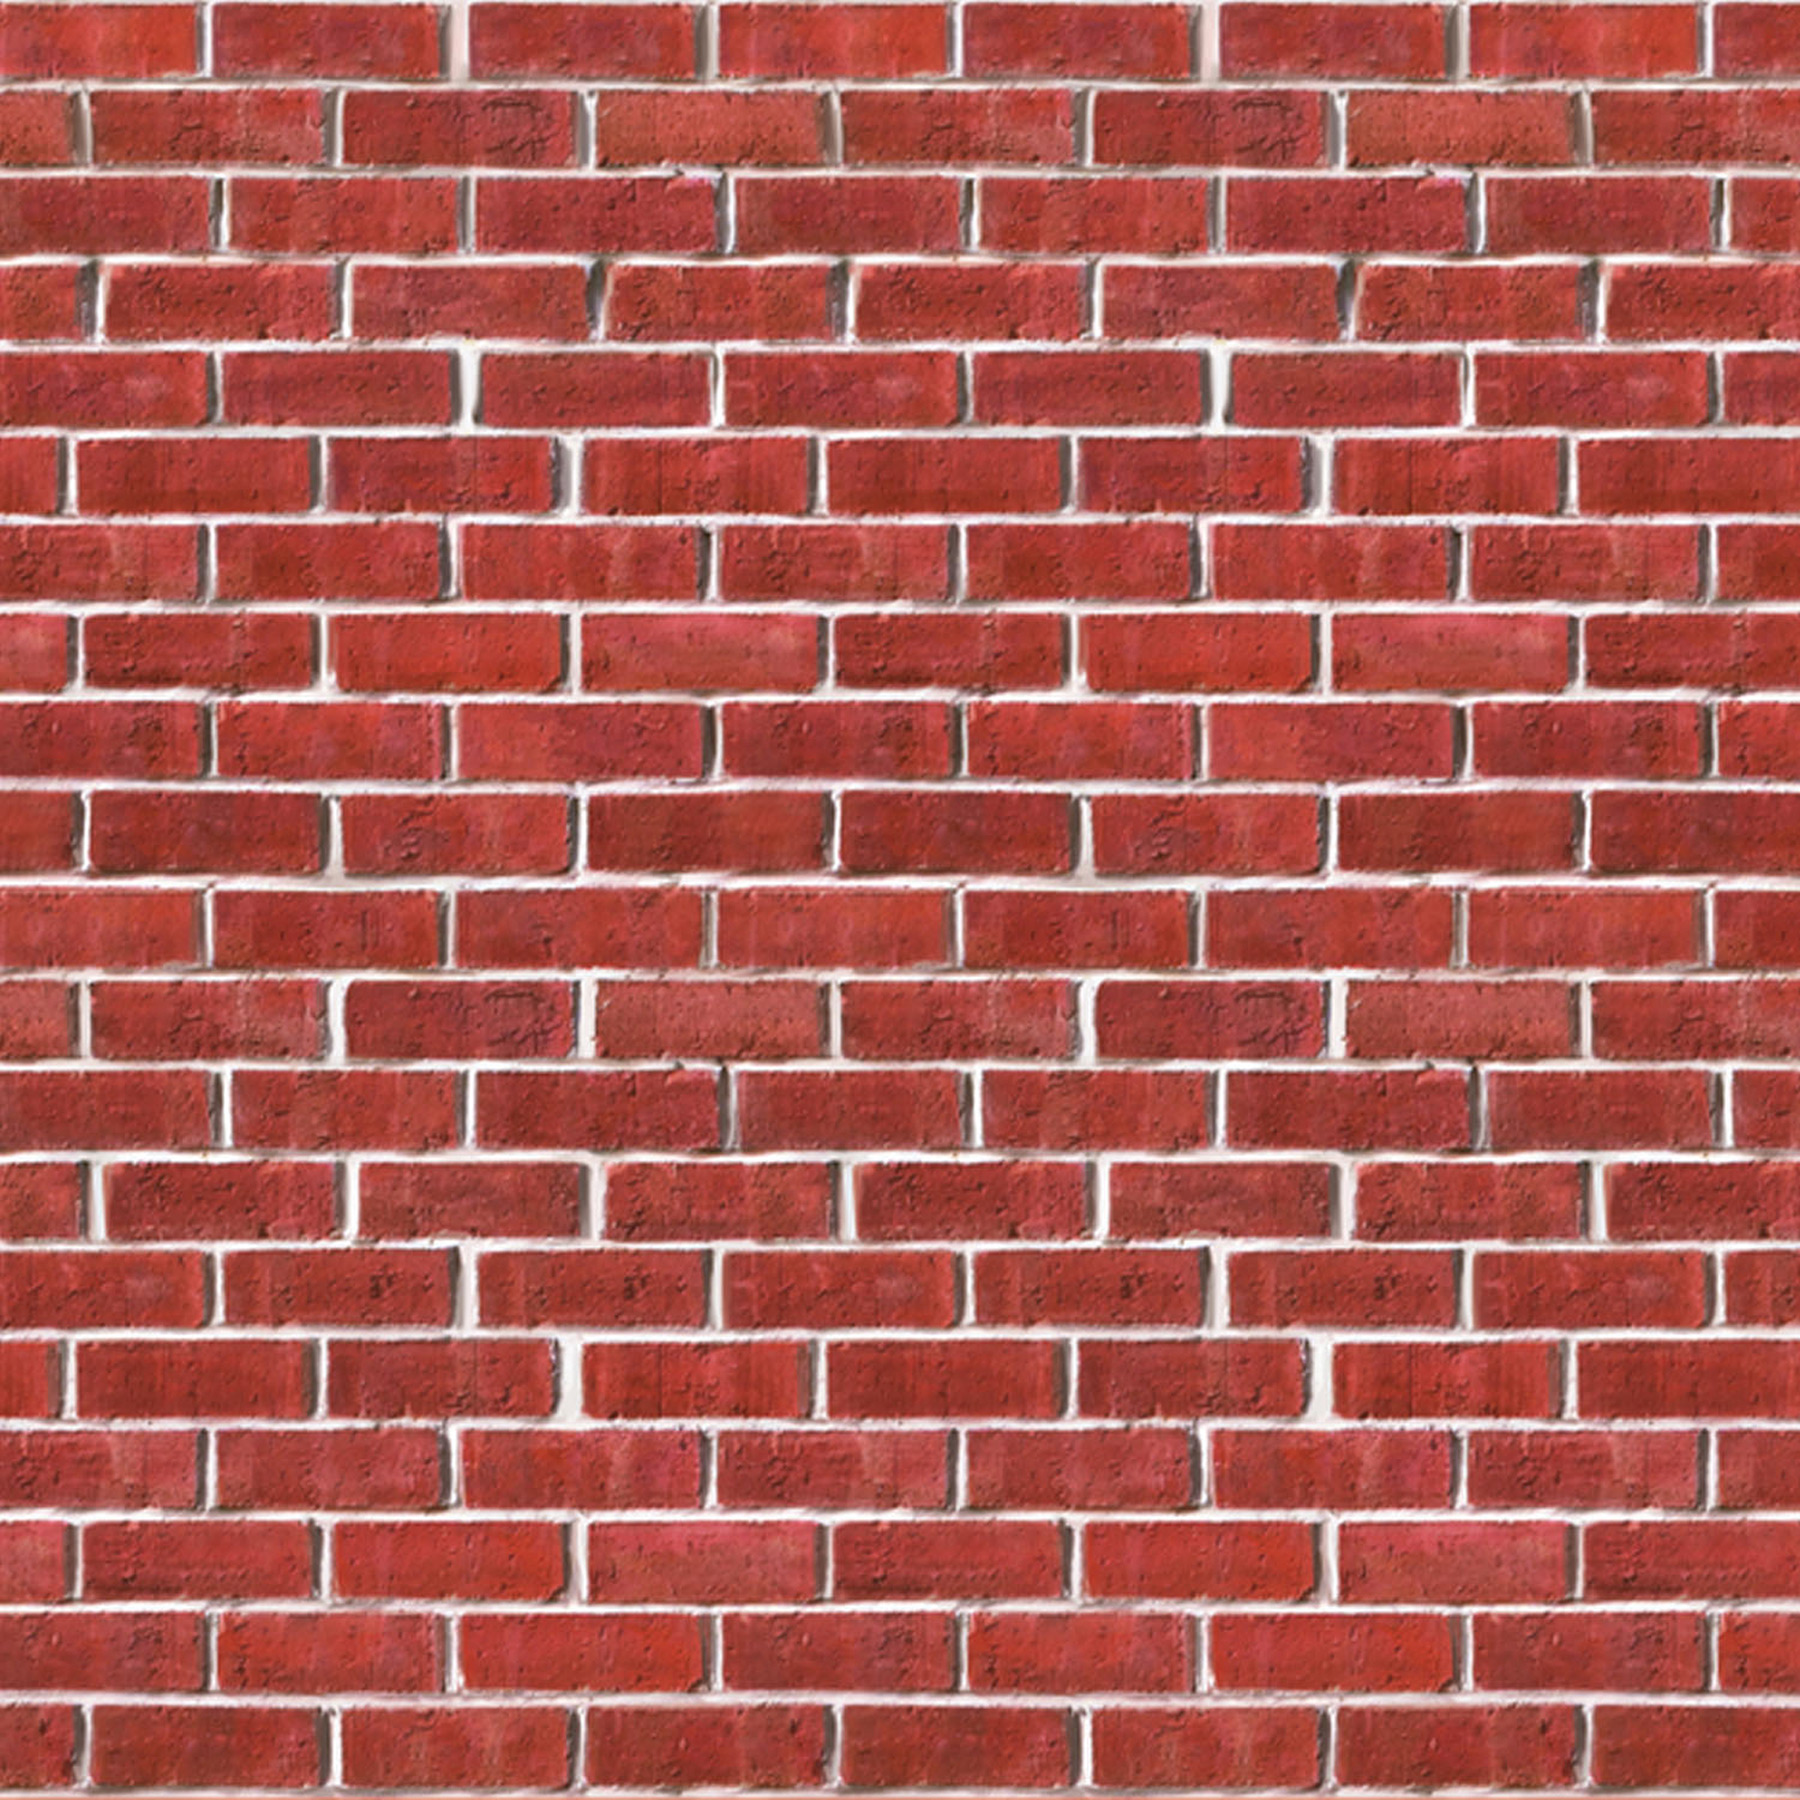 Featured Image for Brick Wall Backdrop